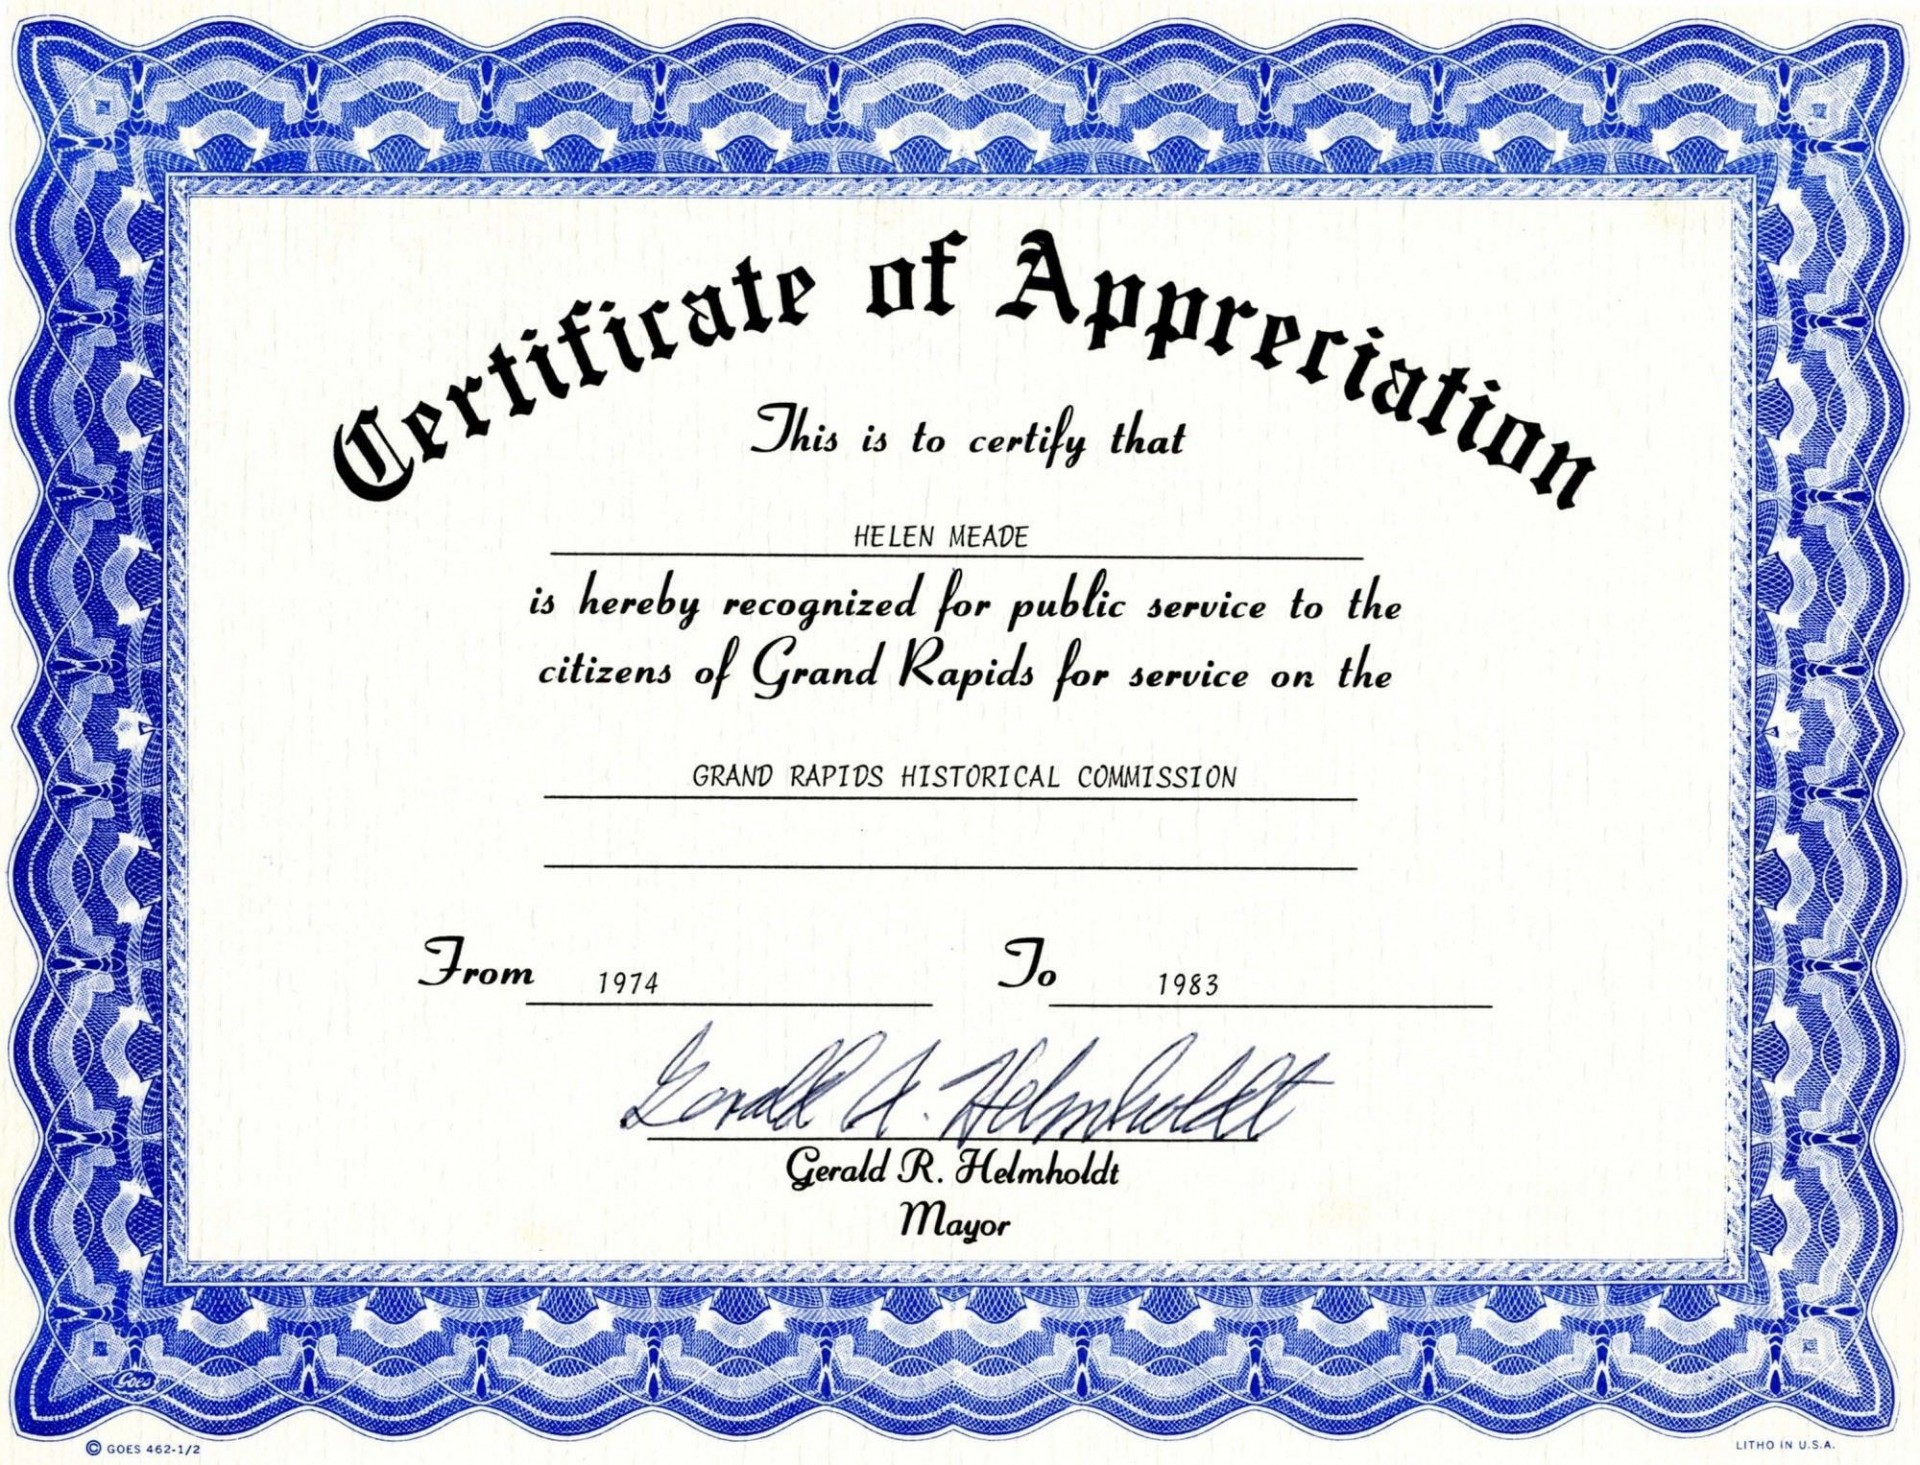 008 Wondrou Certificate Of Award Template Word Free High Definition 1920